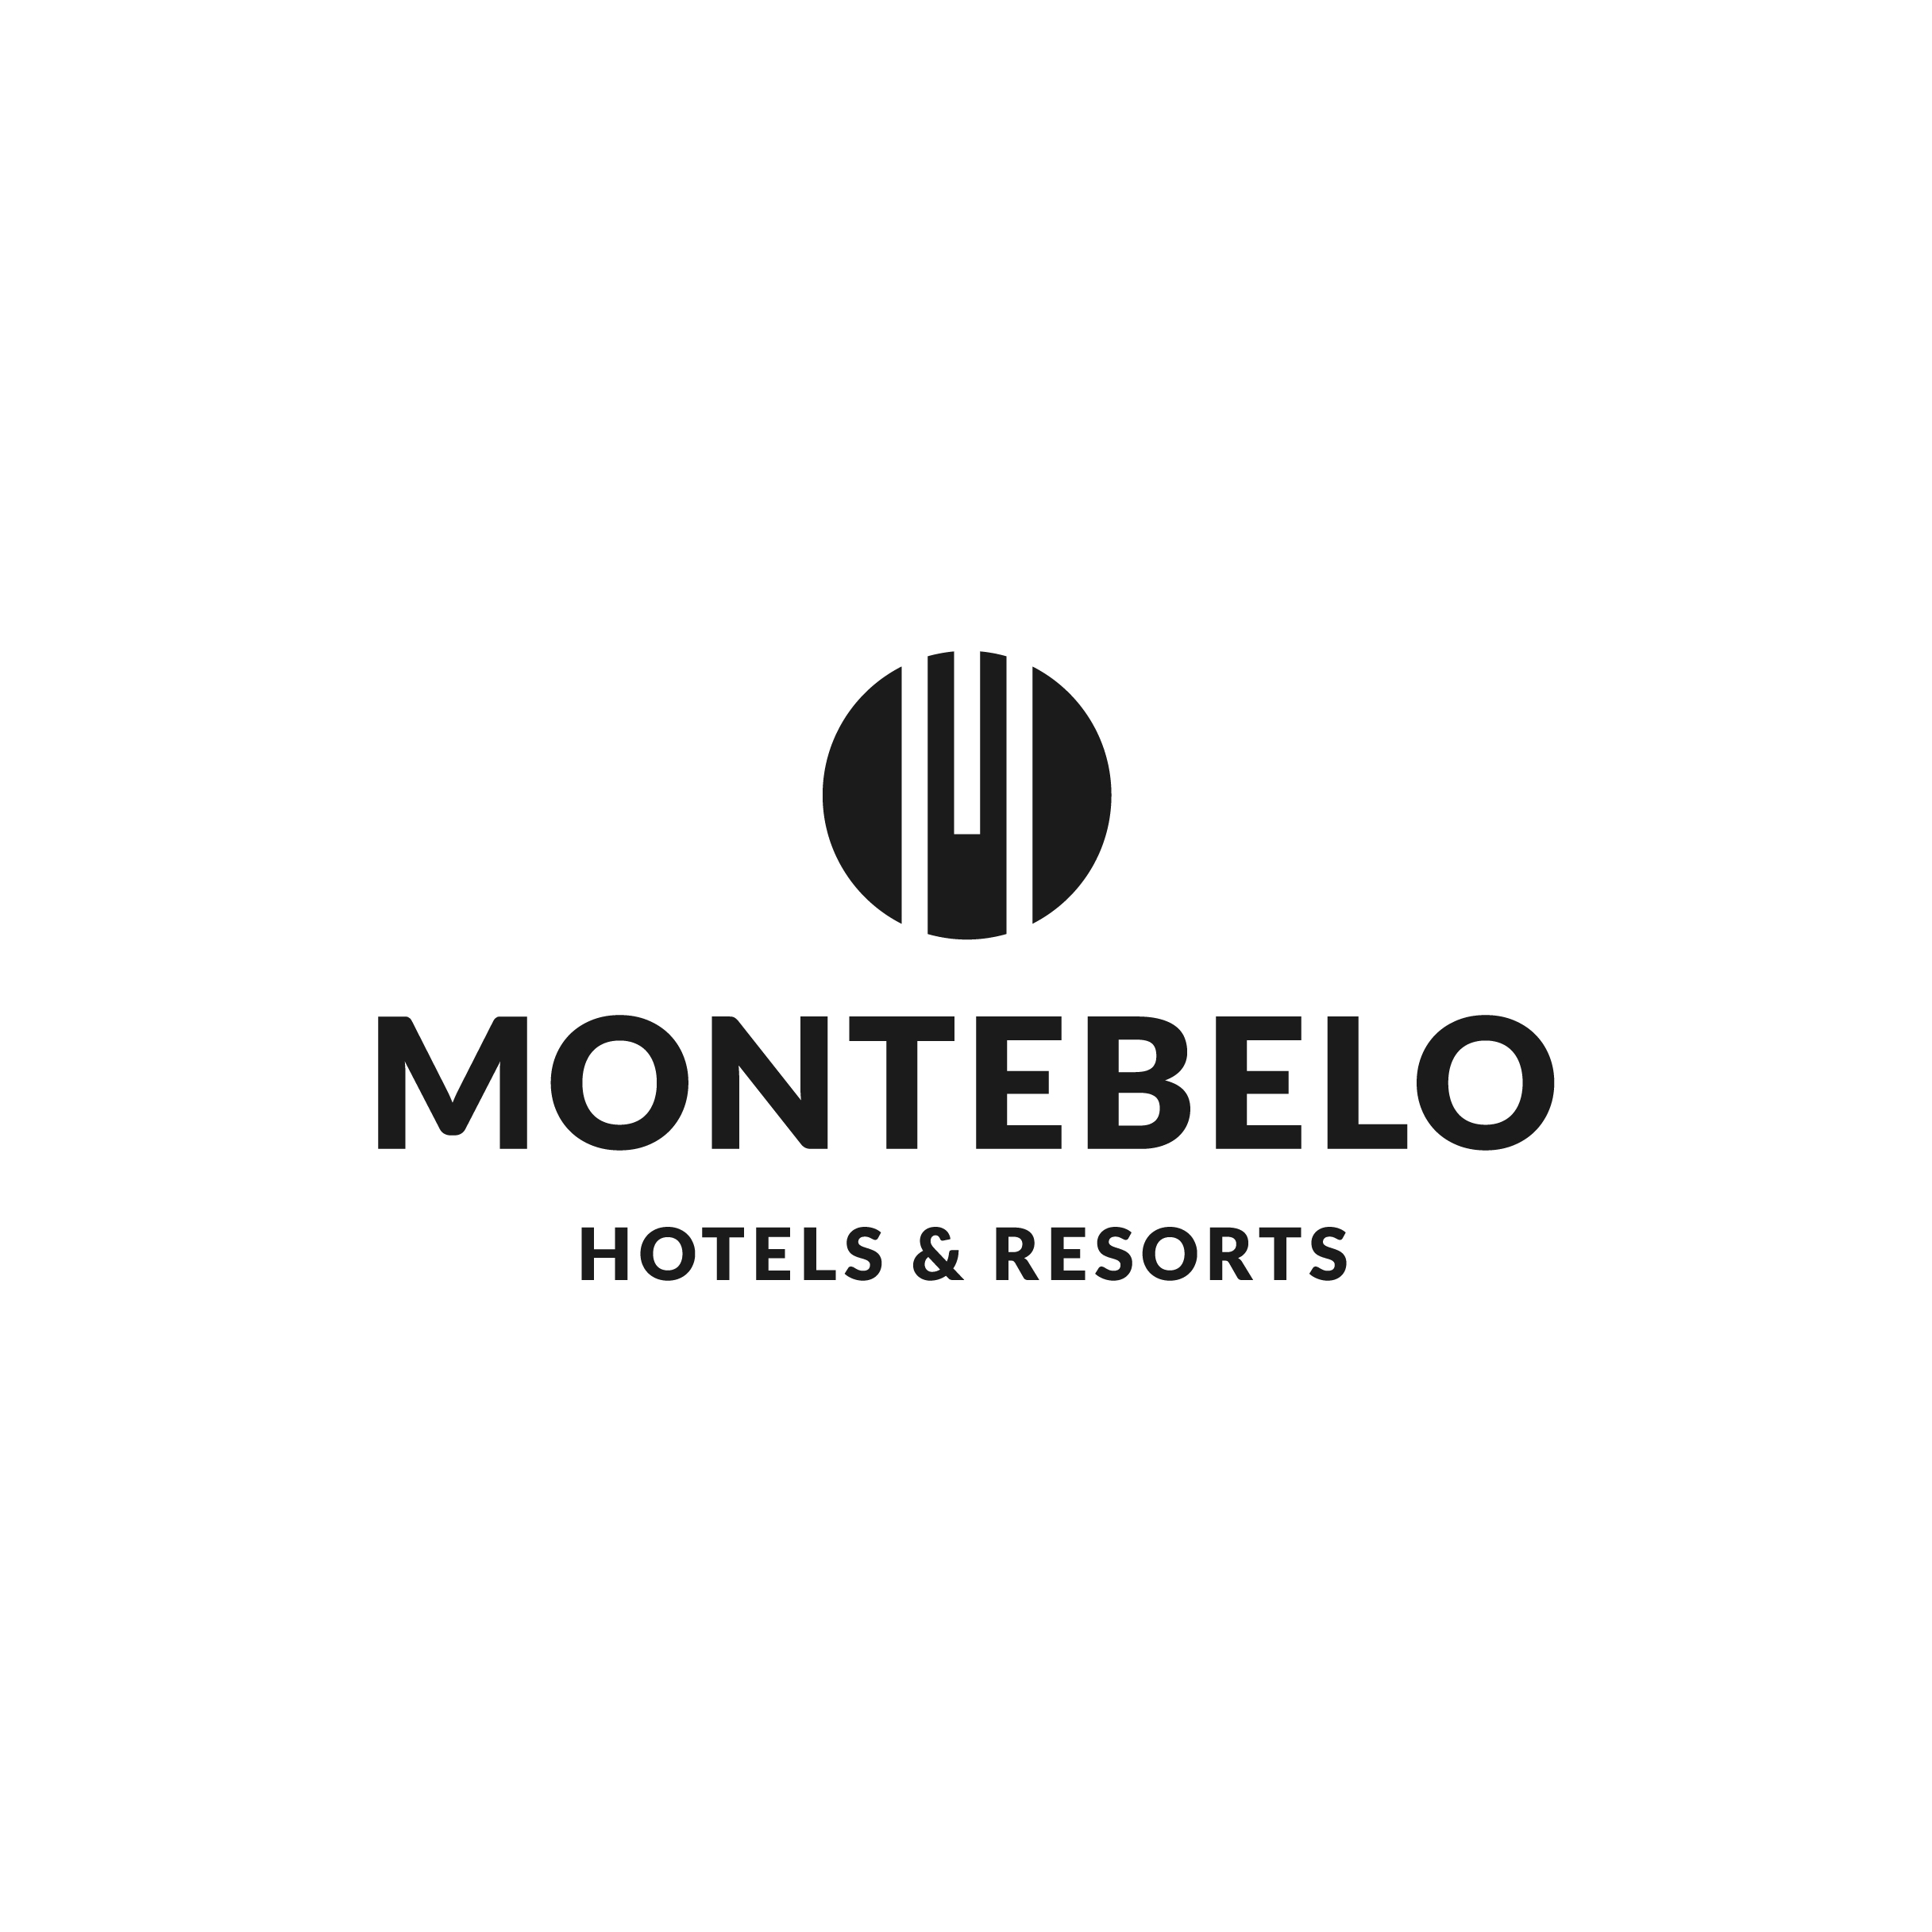 Monte Belo Hotels and Resorts